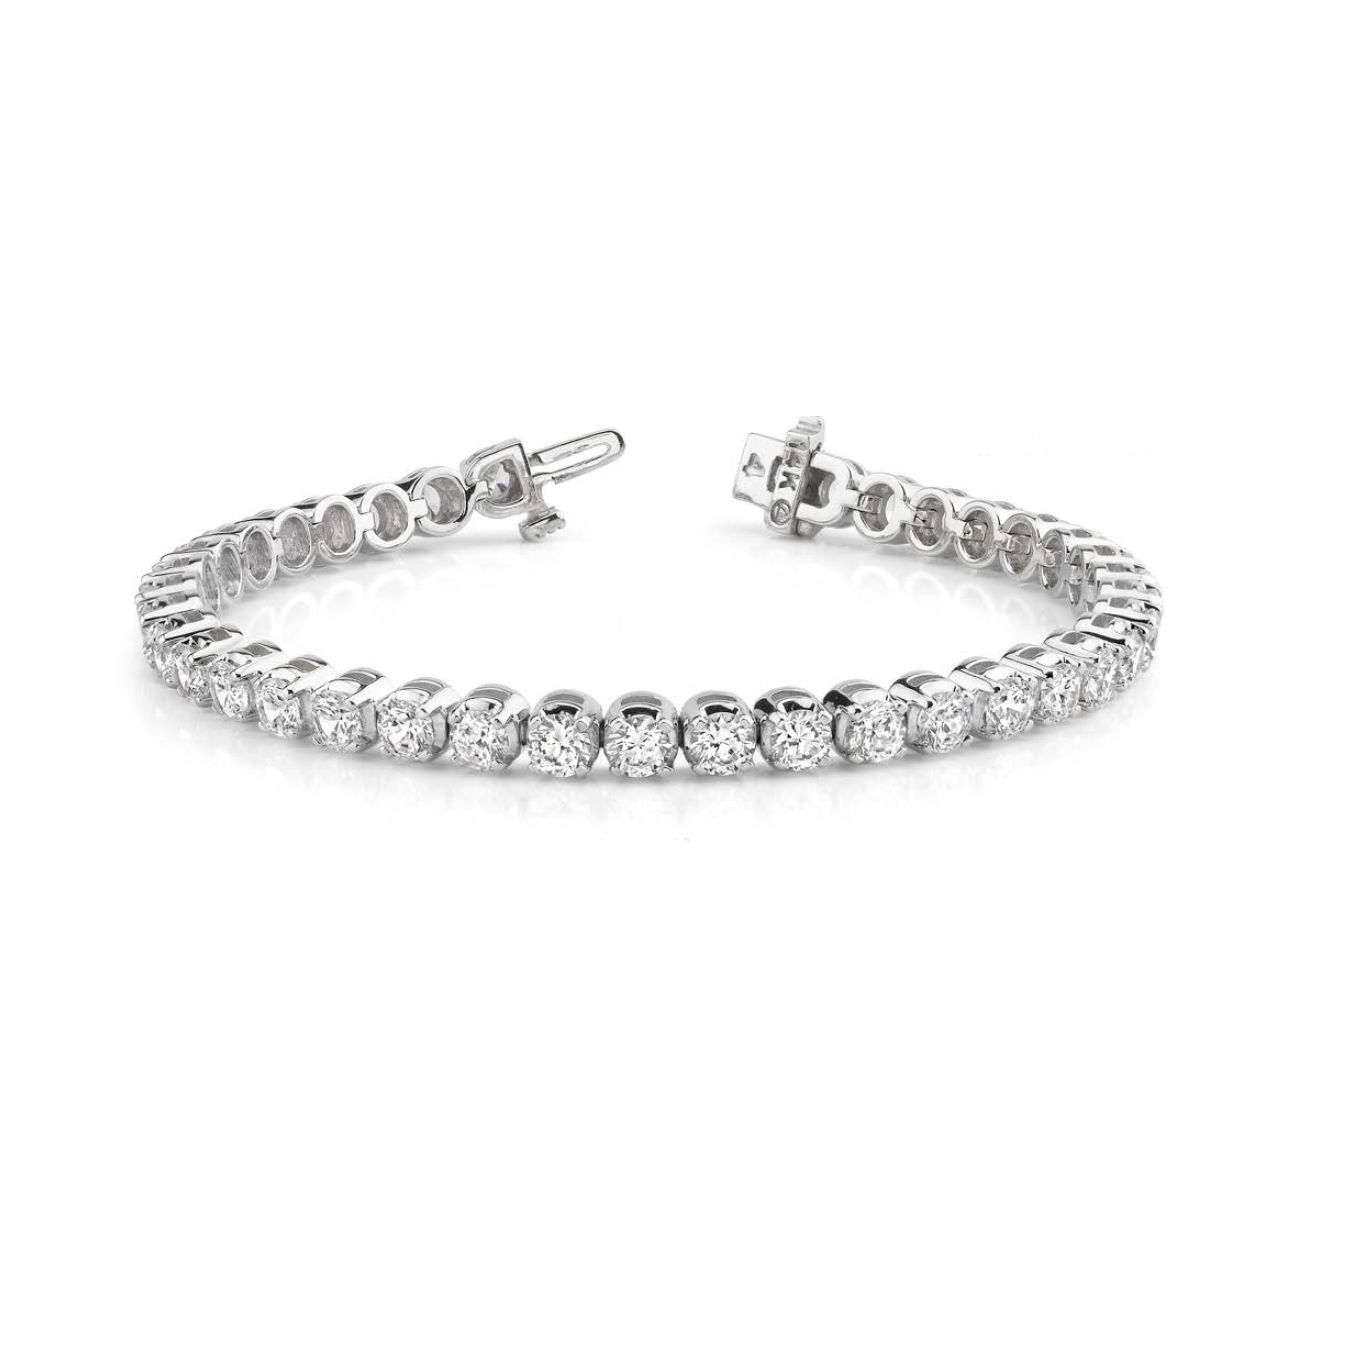 K white gold ct tdw round diamond tennis bracelet gh sisi